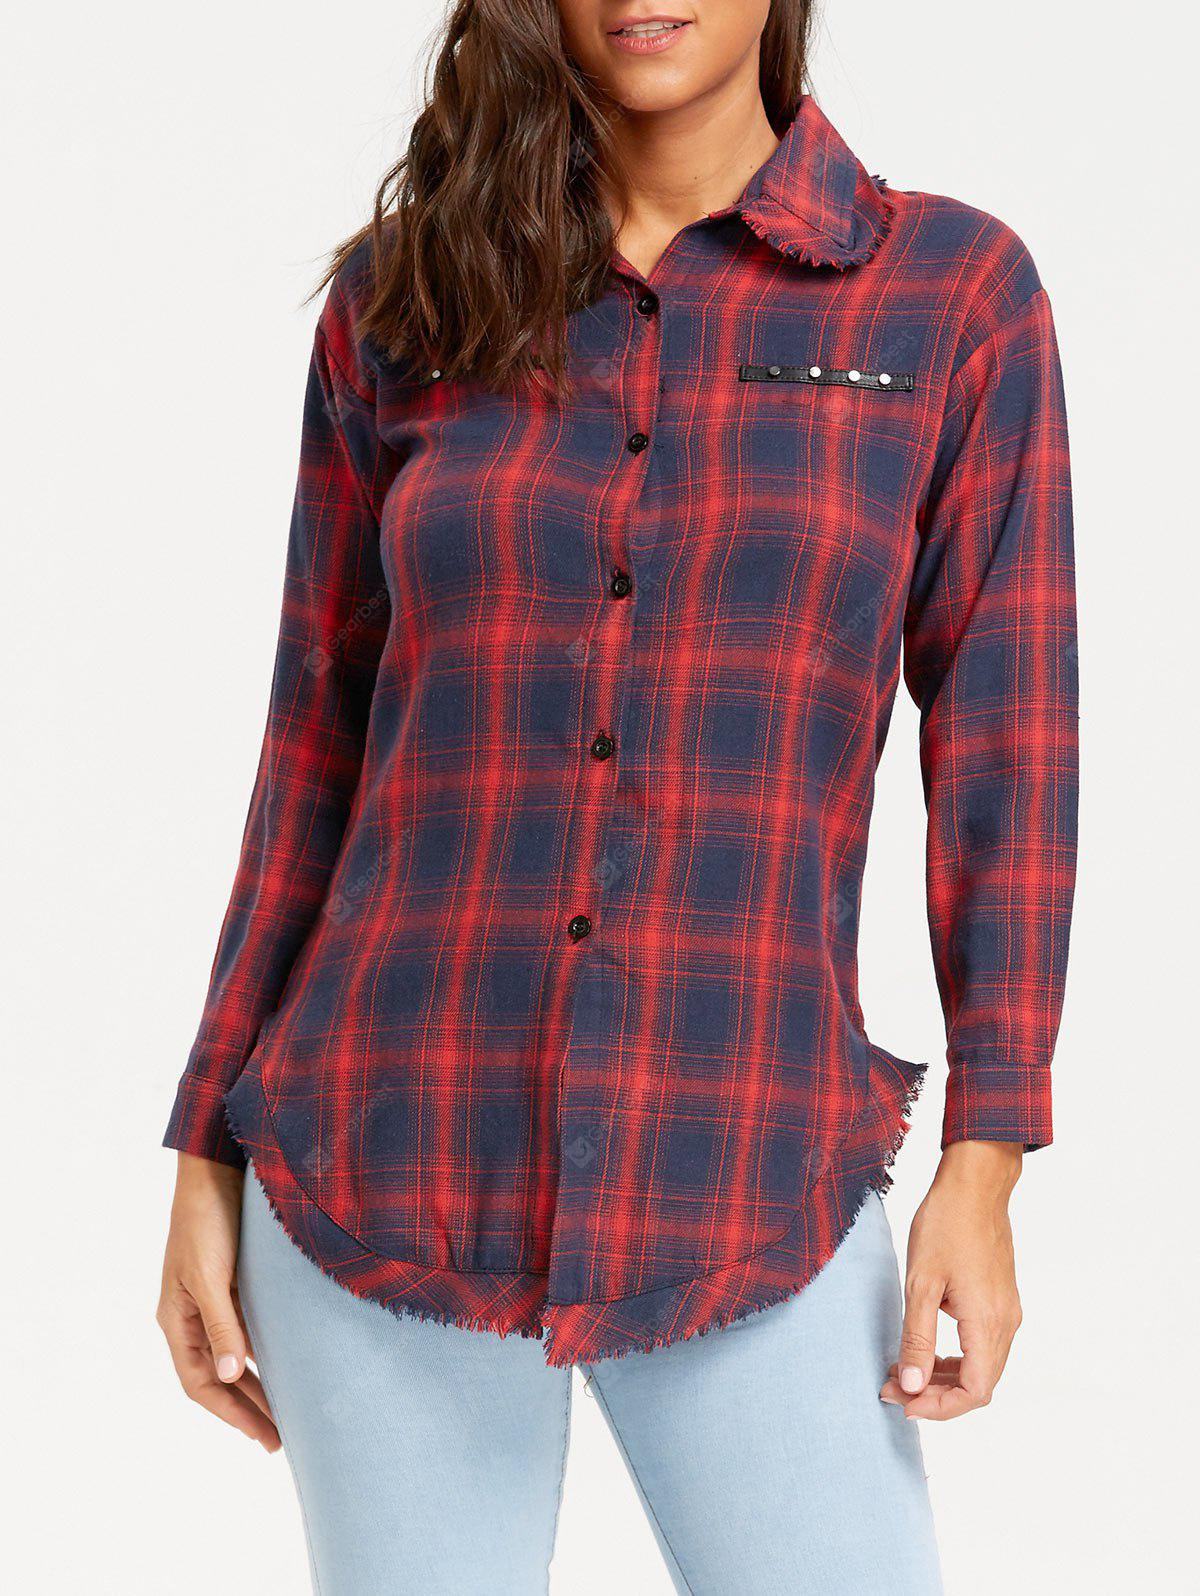 Plaid Frayed Rivet Embellished Shirt